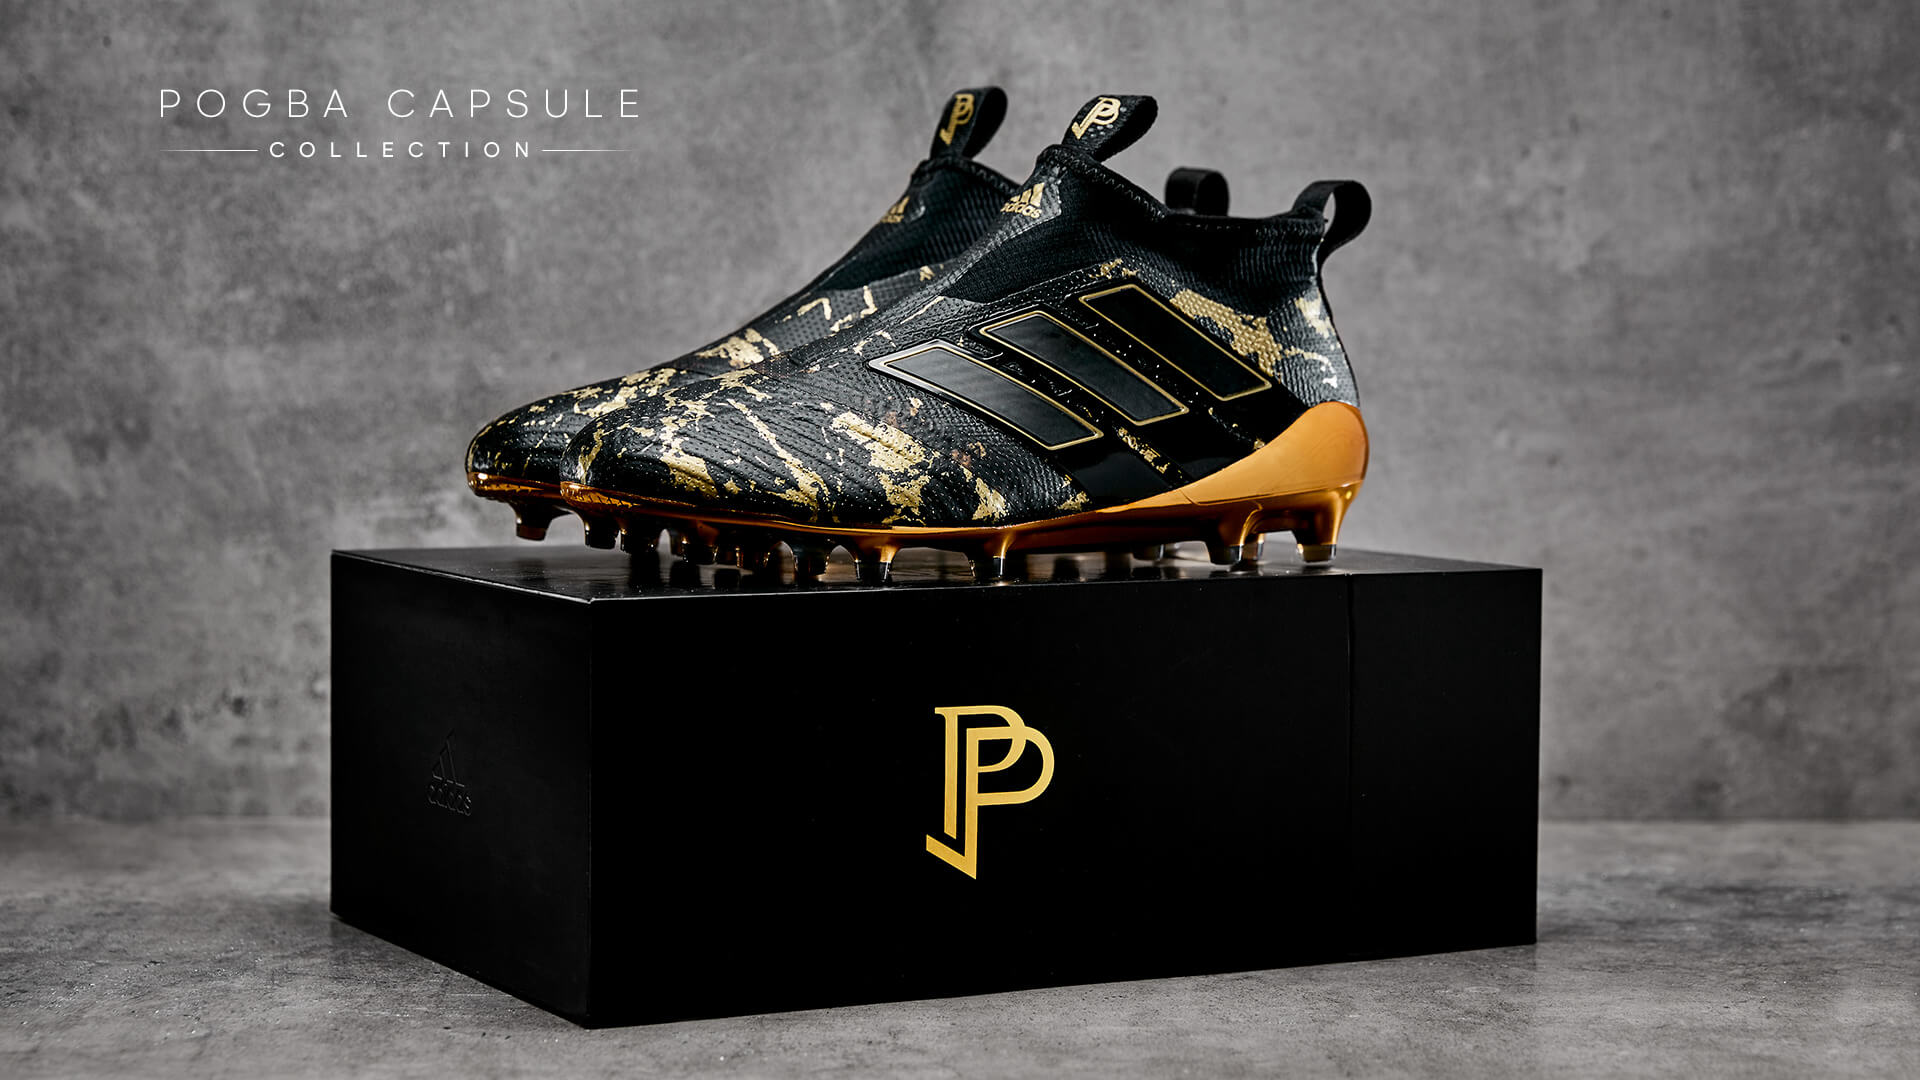 d9476932c55b Paul Pogba and Adidas present capsule collection 2017 – Afroculture.net